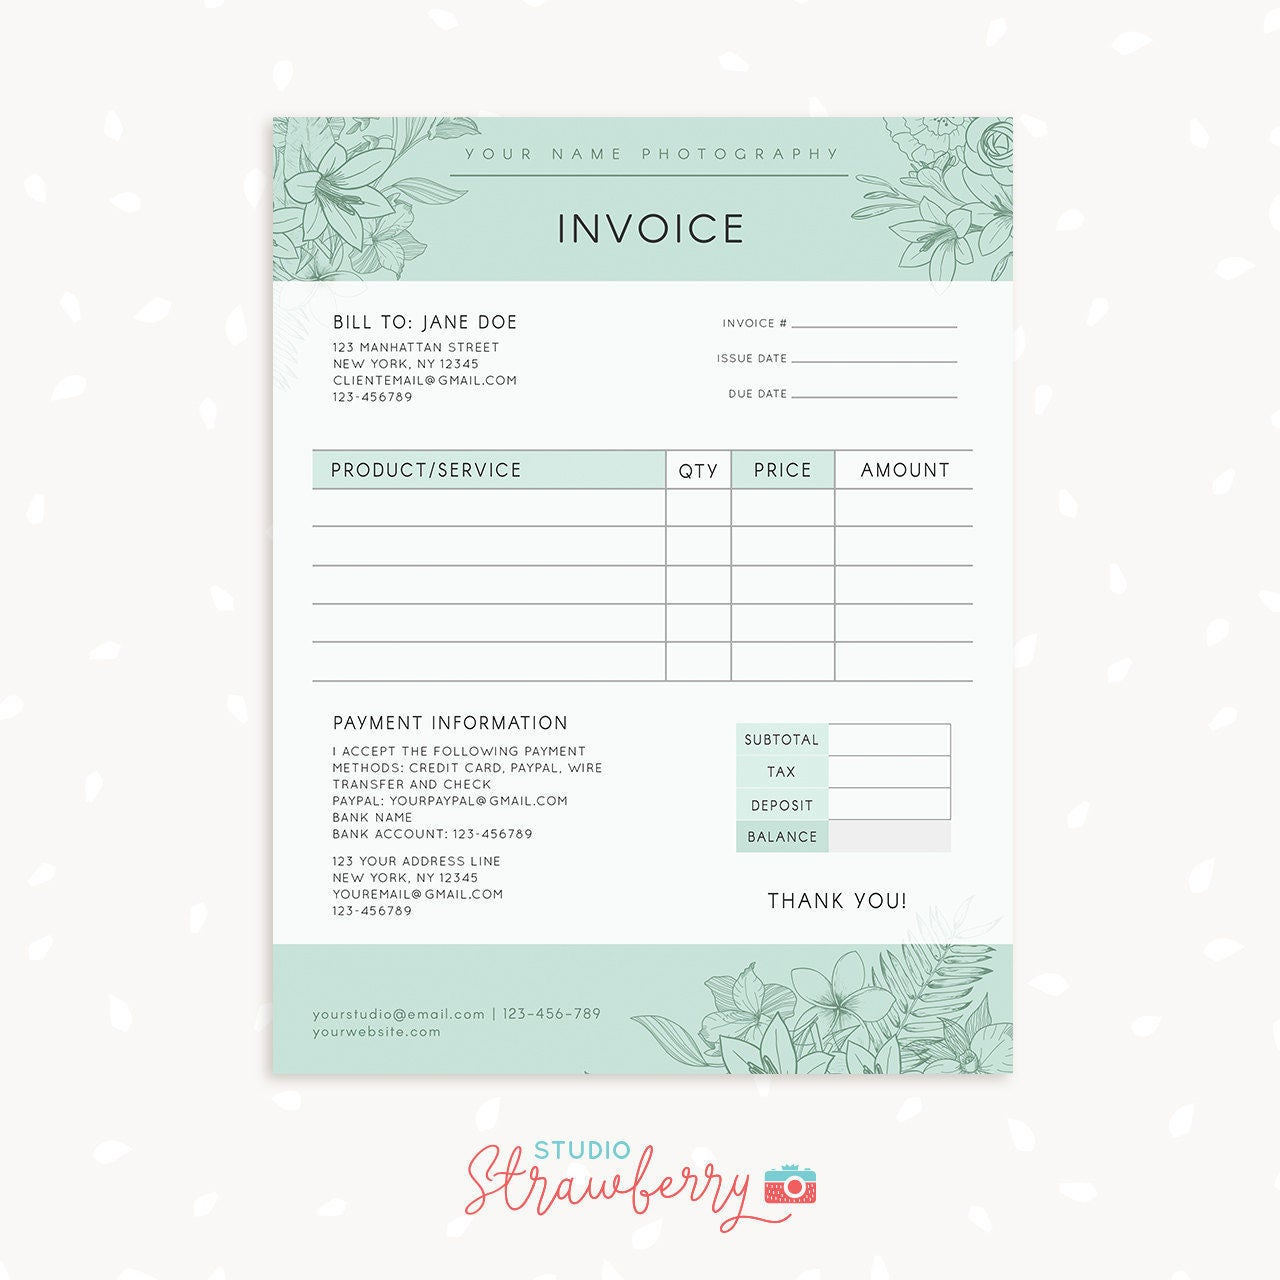 Roofing Invoice Template Pdf Invoice Template Photography Invoice Business Invoice Order To Invoice Process with Get Lic Receipt Online Excel Zoom Billing Invoicing Pdf